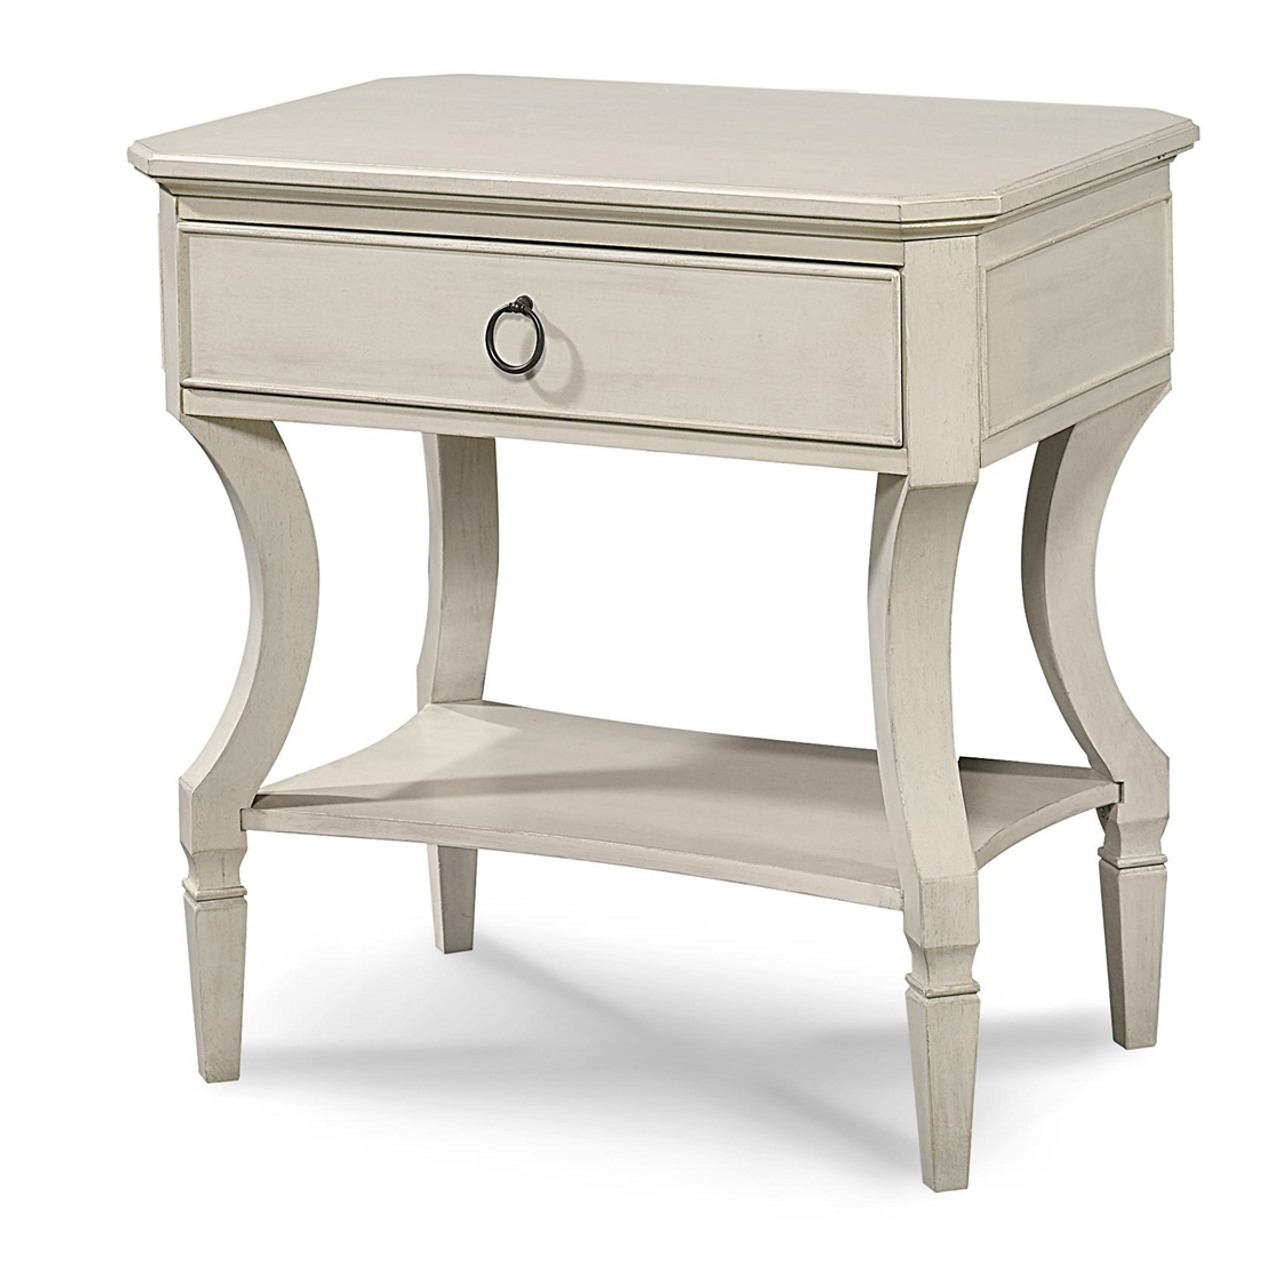 Tremendous Country Chic Maple Wood 1 Drawer Bedside Table White Uwap Interior Chair Design Uwaporg